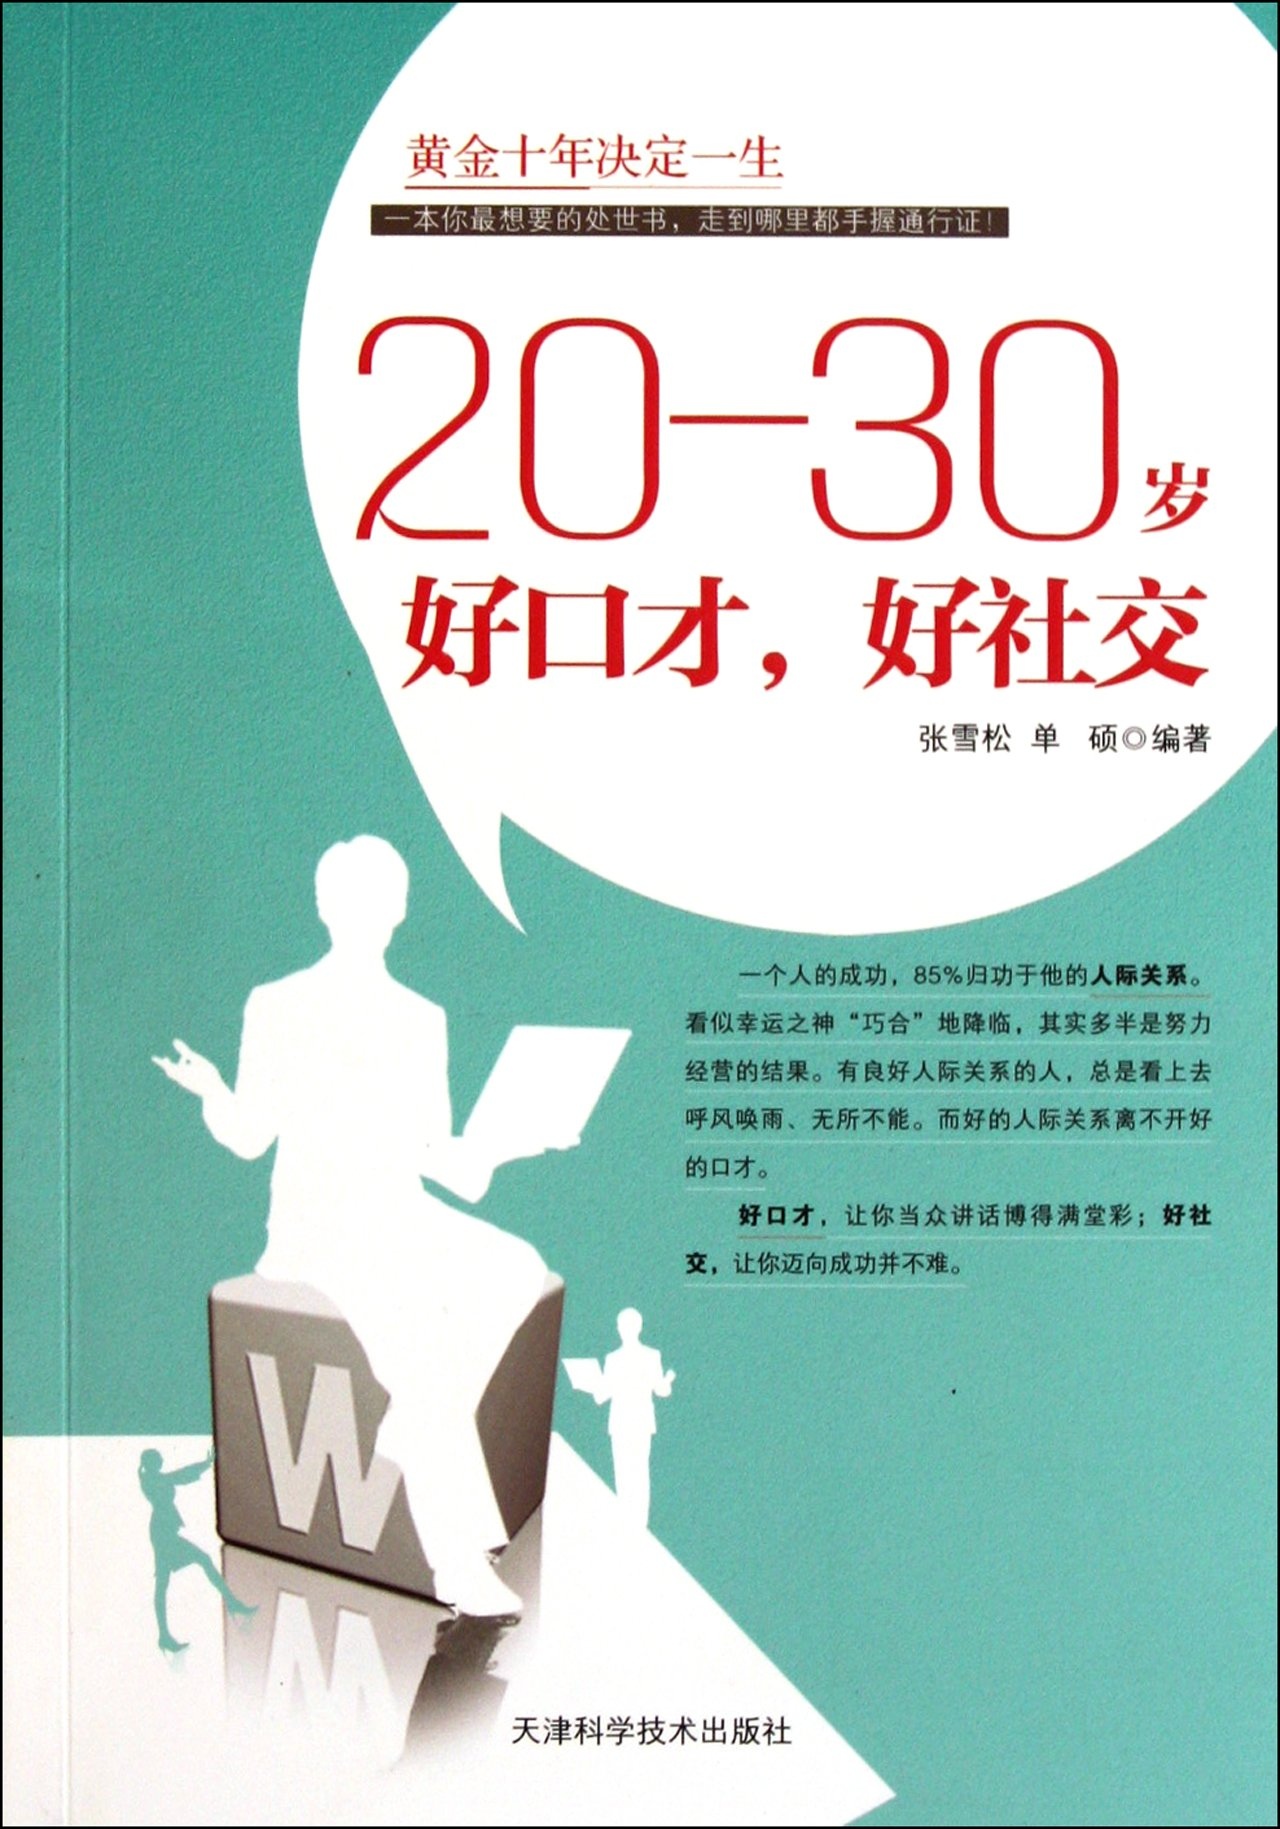 Download Excellent Eloquence and Interpersonal Relationship in Ones Twenties and Thirties (Chinese Edition) ebook